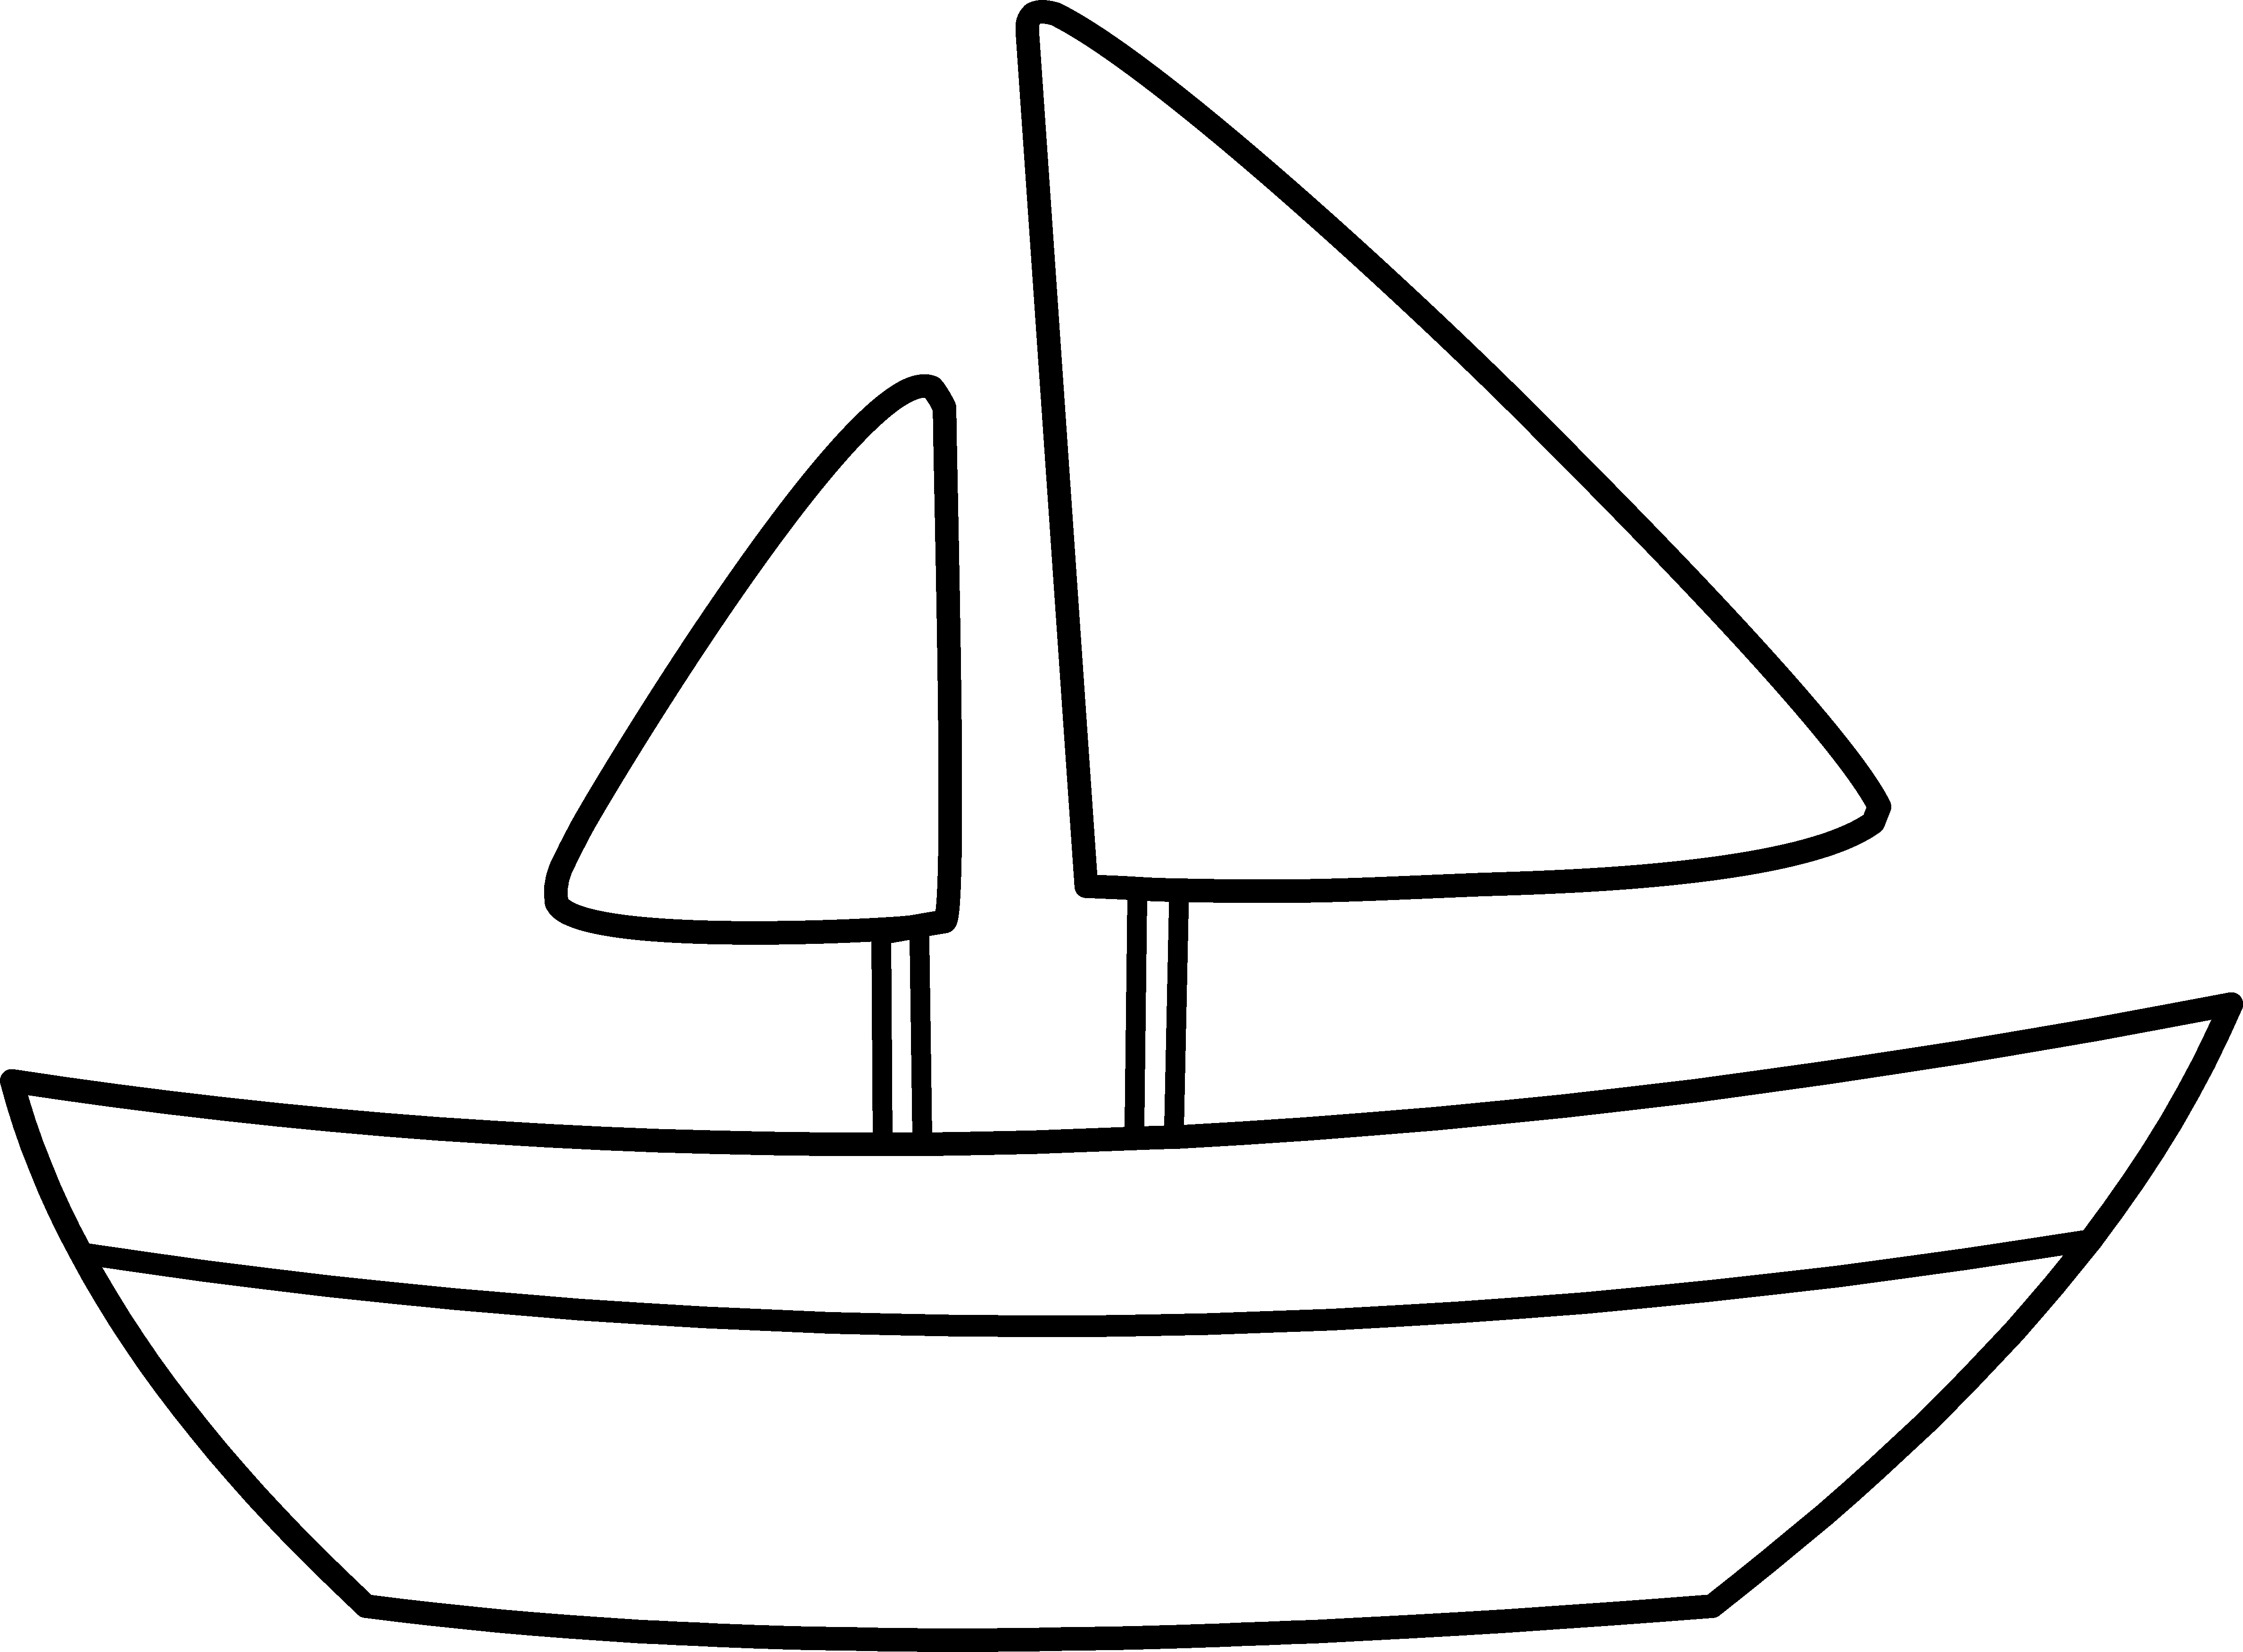 coloring boat for kids boat coloring pages to download and print for free for boat coloring kids